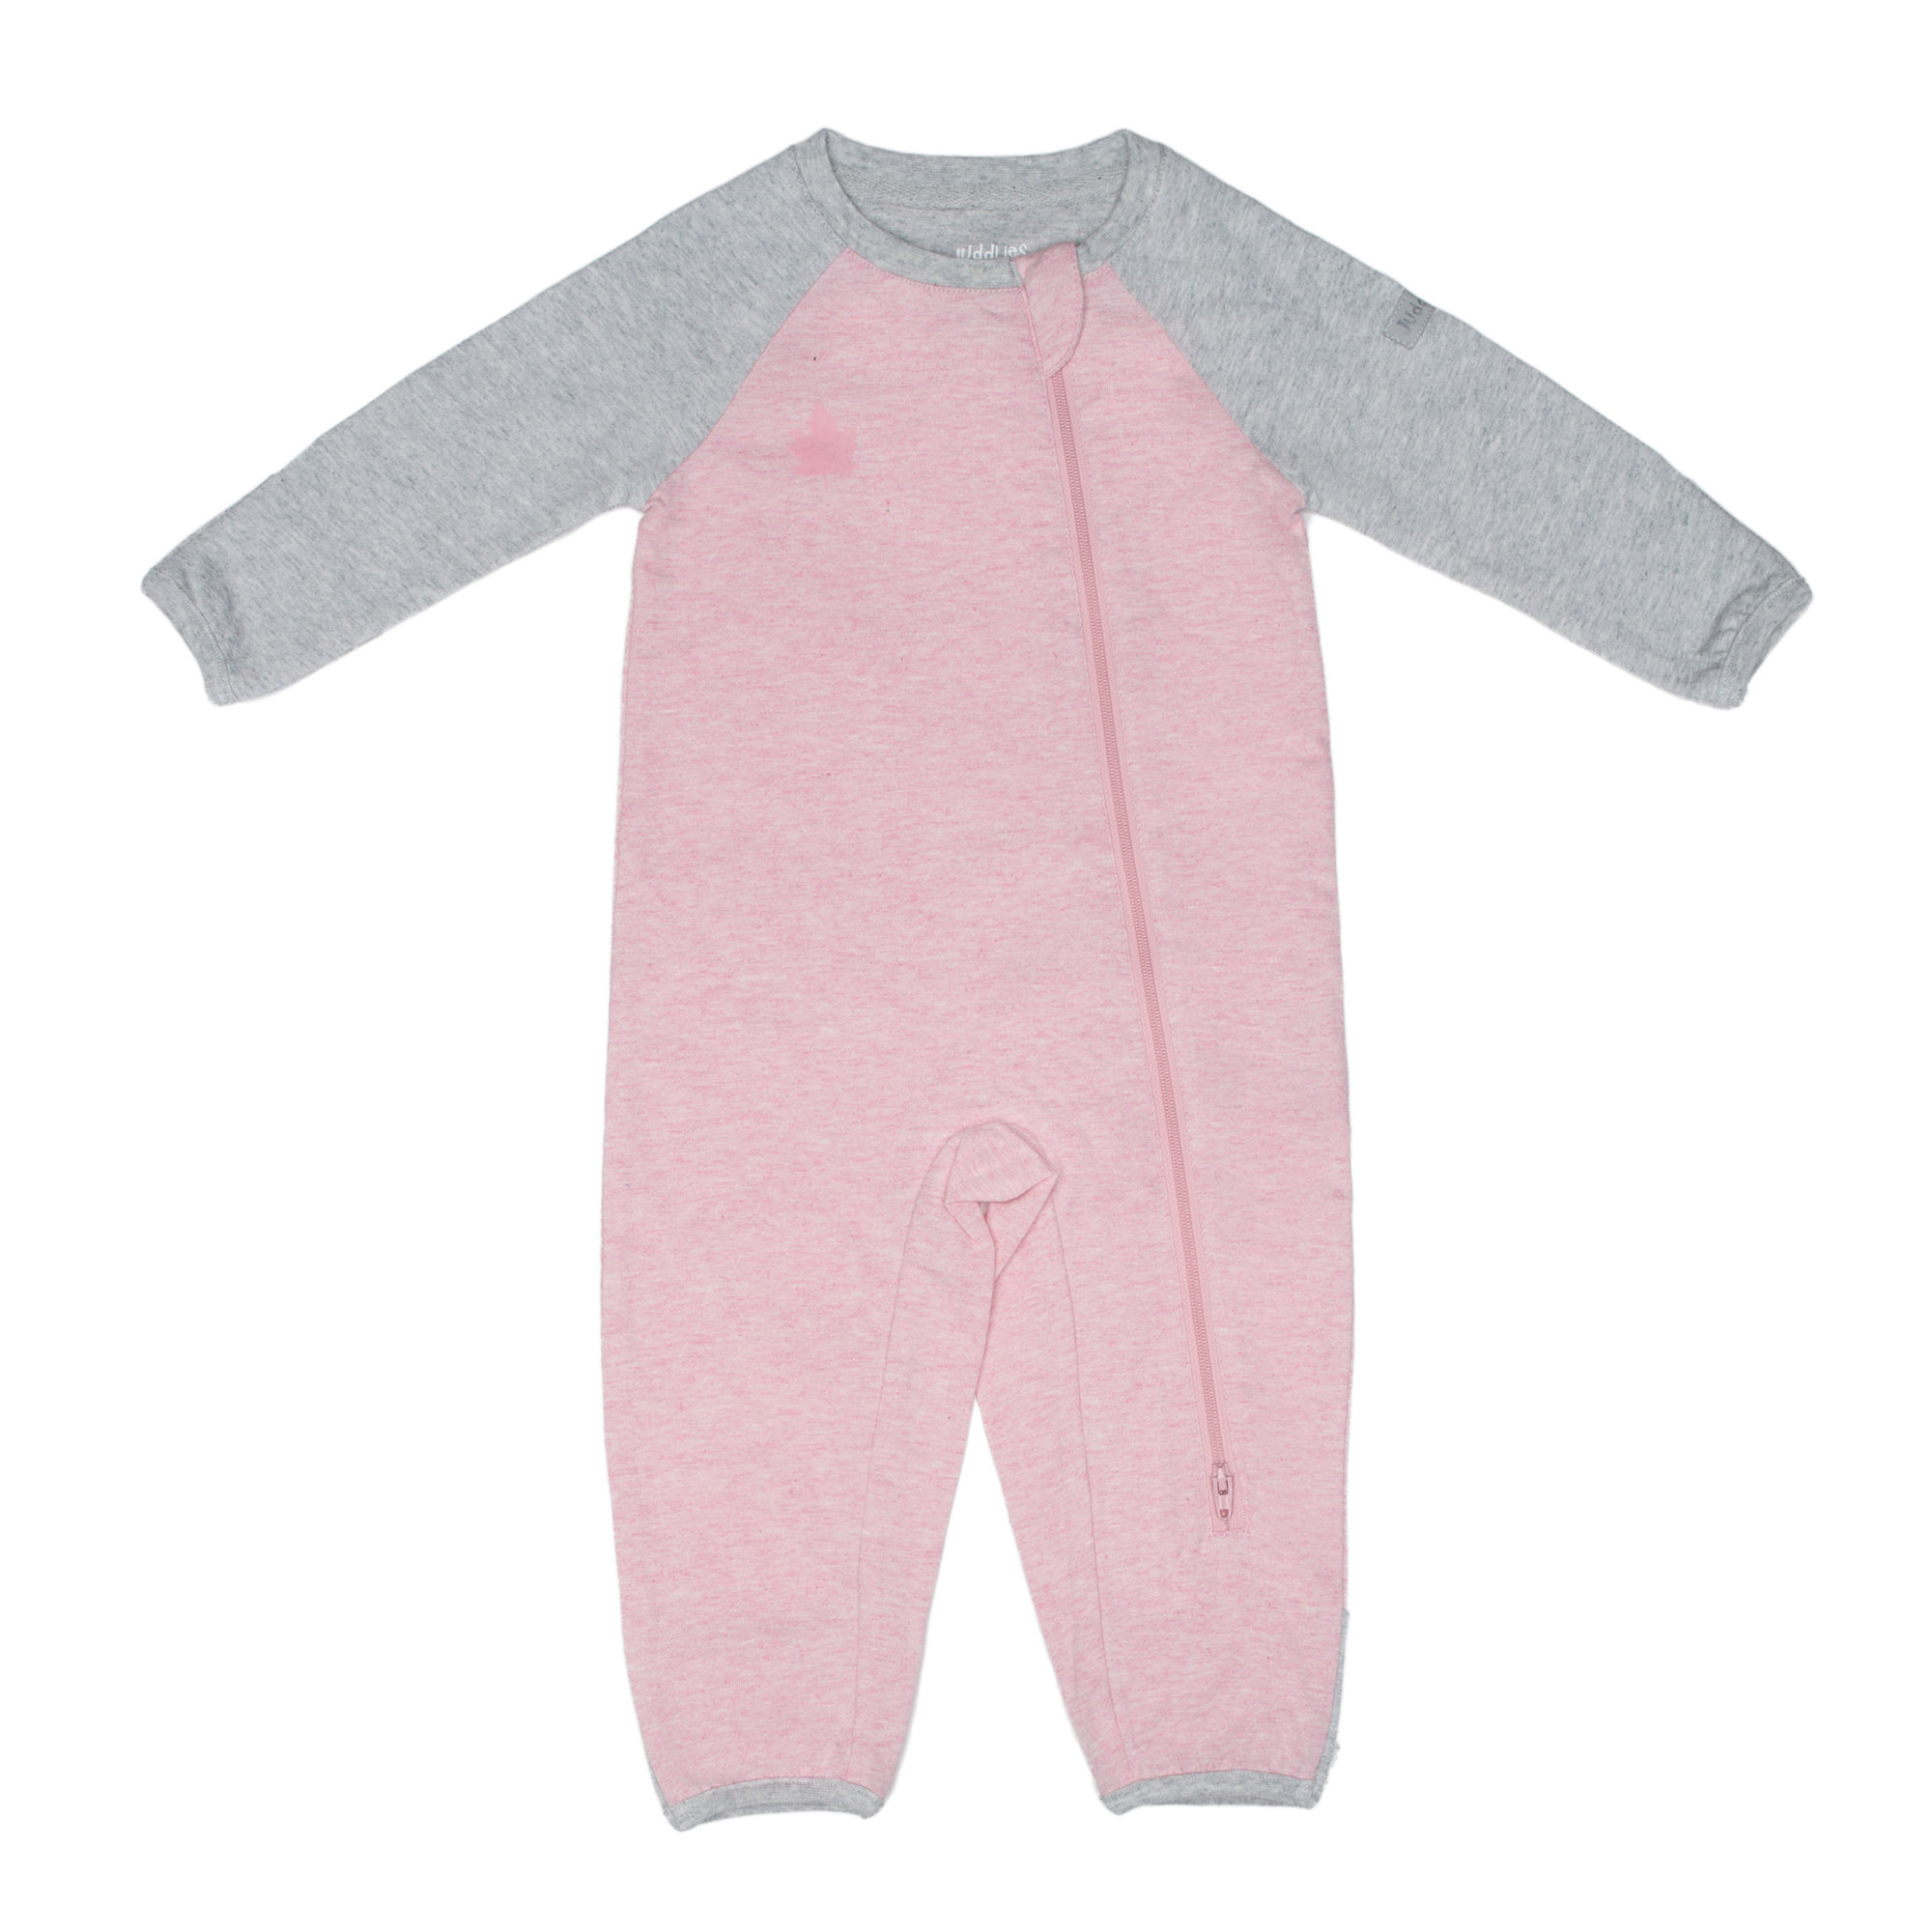 Juddlies Organic Cotton Raglan Playsuit / Sleeper